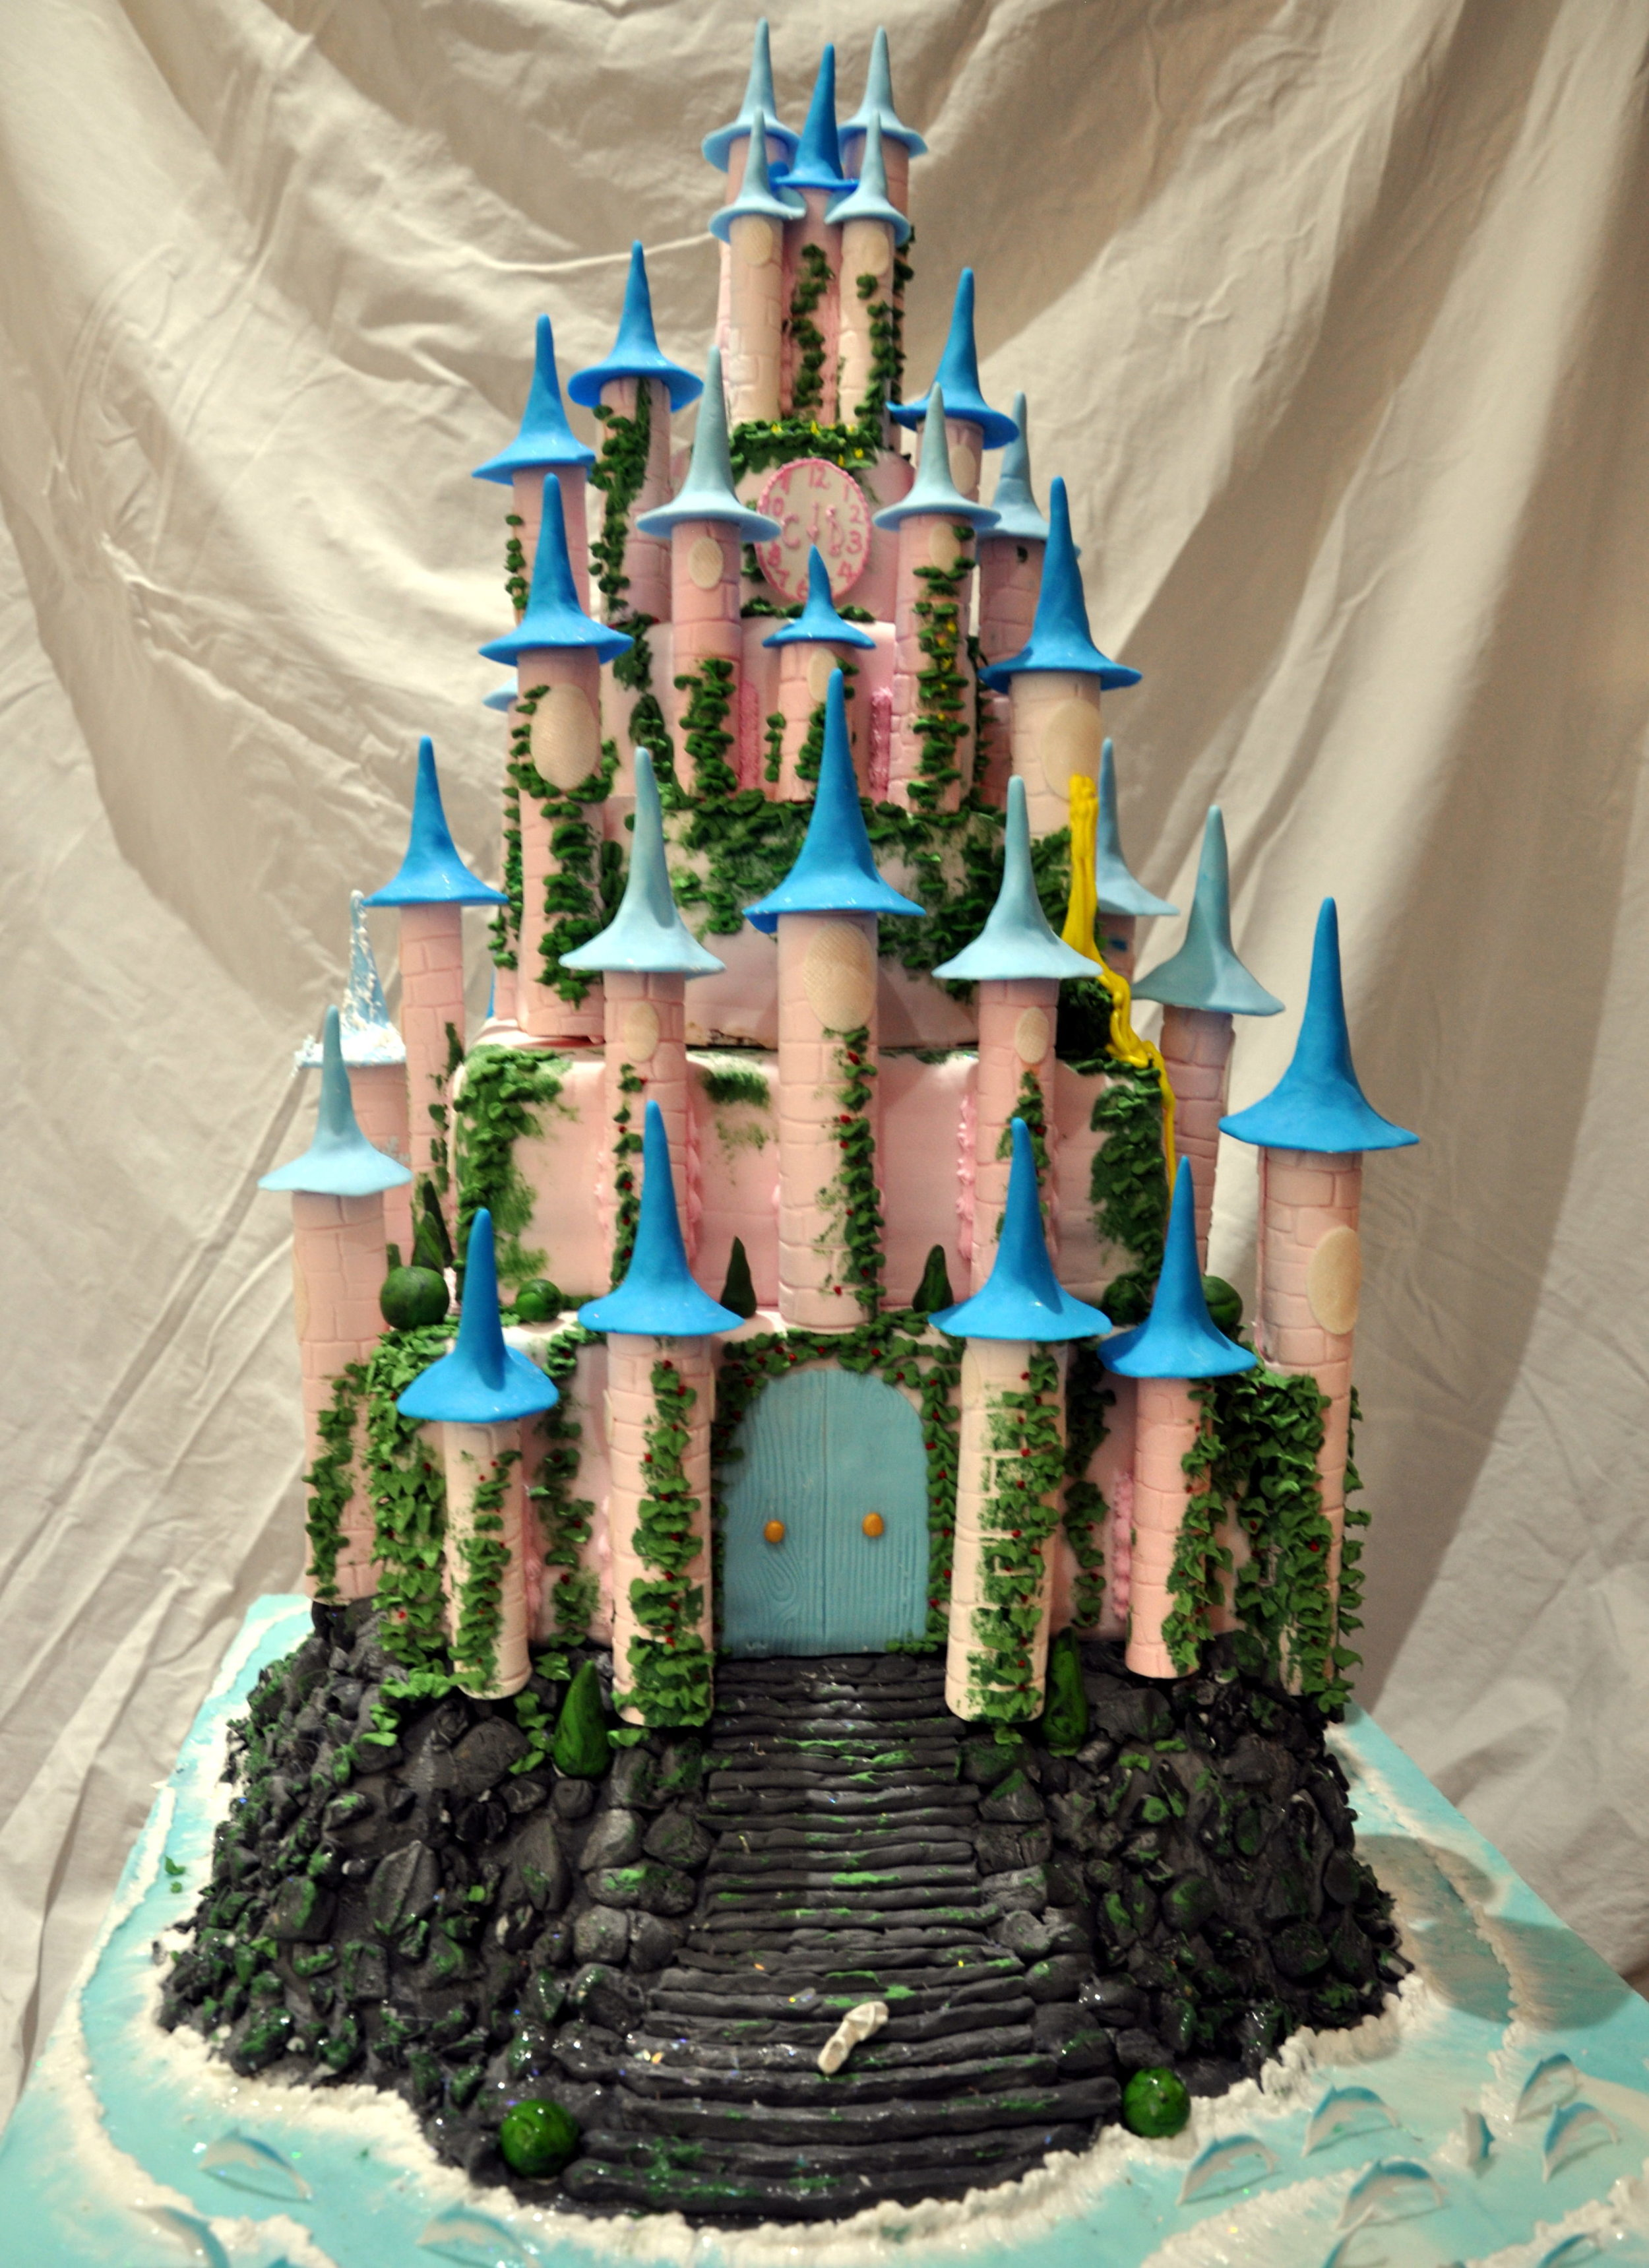 Fairy tale castle - An amazing five tier wedding cake for a couple with a fun outlook on life.  The fairy tale castle has a clock striking at the time of the ceremony, a glass slipper discarded on the steps and dolphins playing in the sea in tribute to the event.For an extra surprise, each tier is a different flavour.